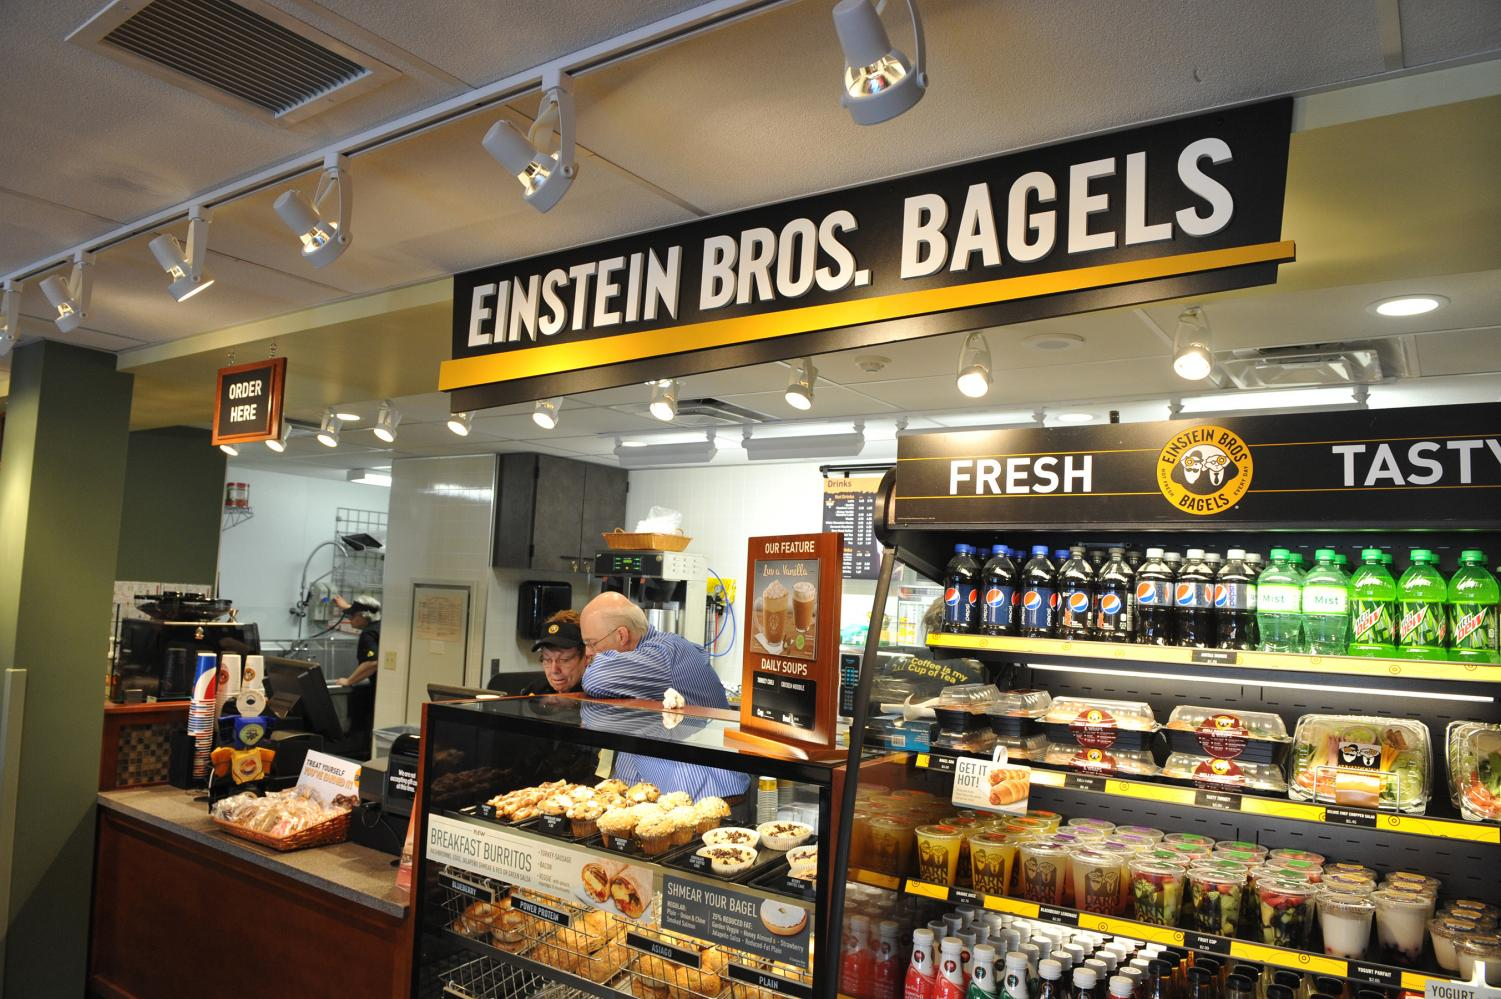 Above is Missouri University's Einstein Bros. Bagels. This is what the UWO Sage Cafe could look like when the transition to Einstein Bros. Bagels and Caribou Coffee occurs over the 2019 summer break.